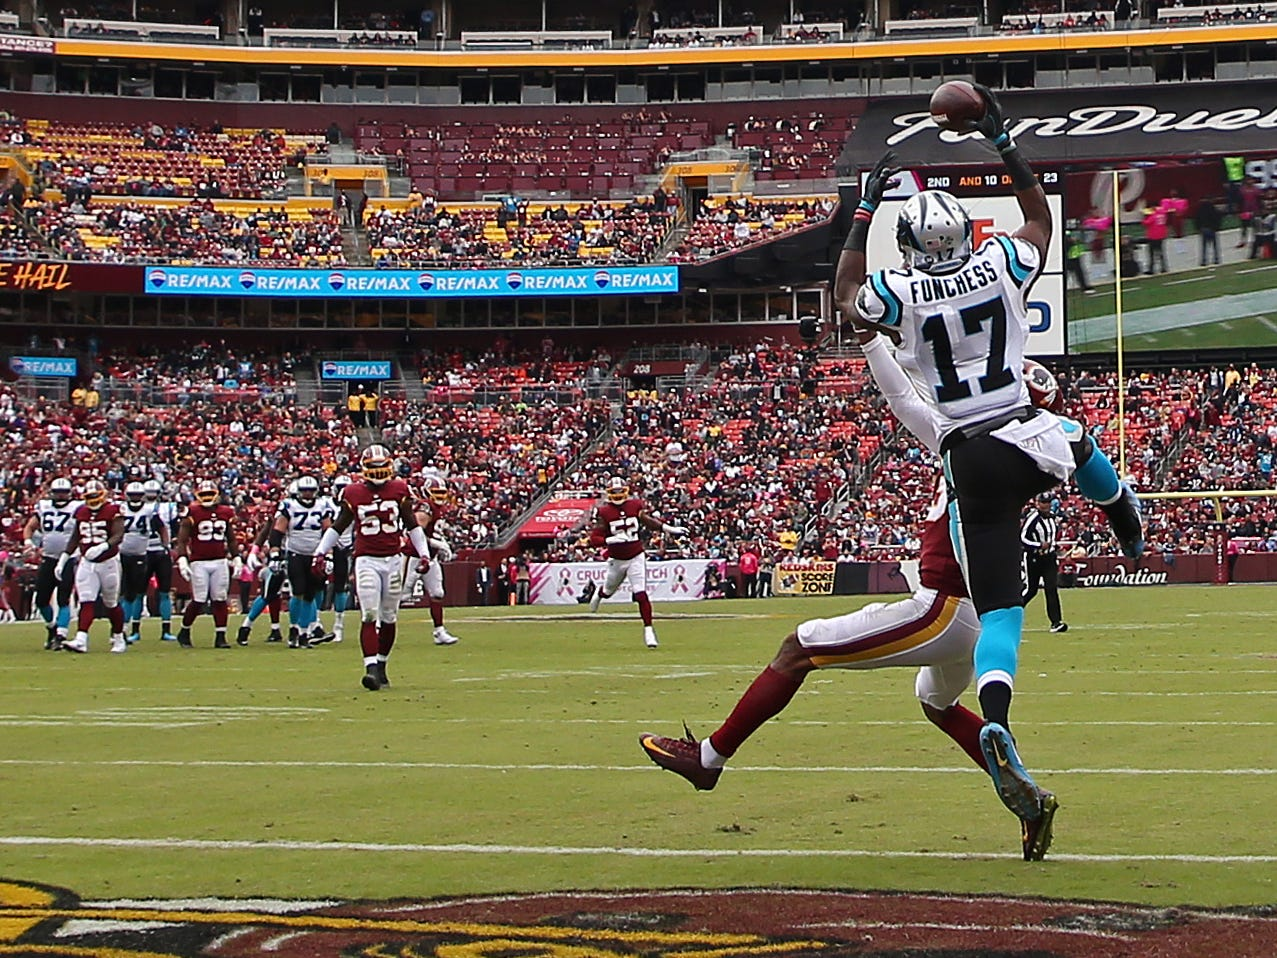 Carolina Panthers wide receiver Devin Funchess catches a touchdown pass over Washington Redskins cornerback Quinton Dunbar in the second quarter at FedEx Field.